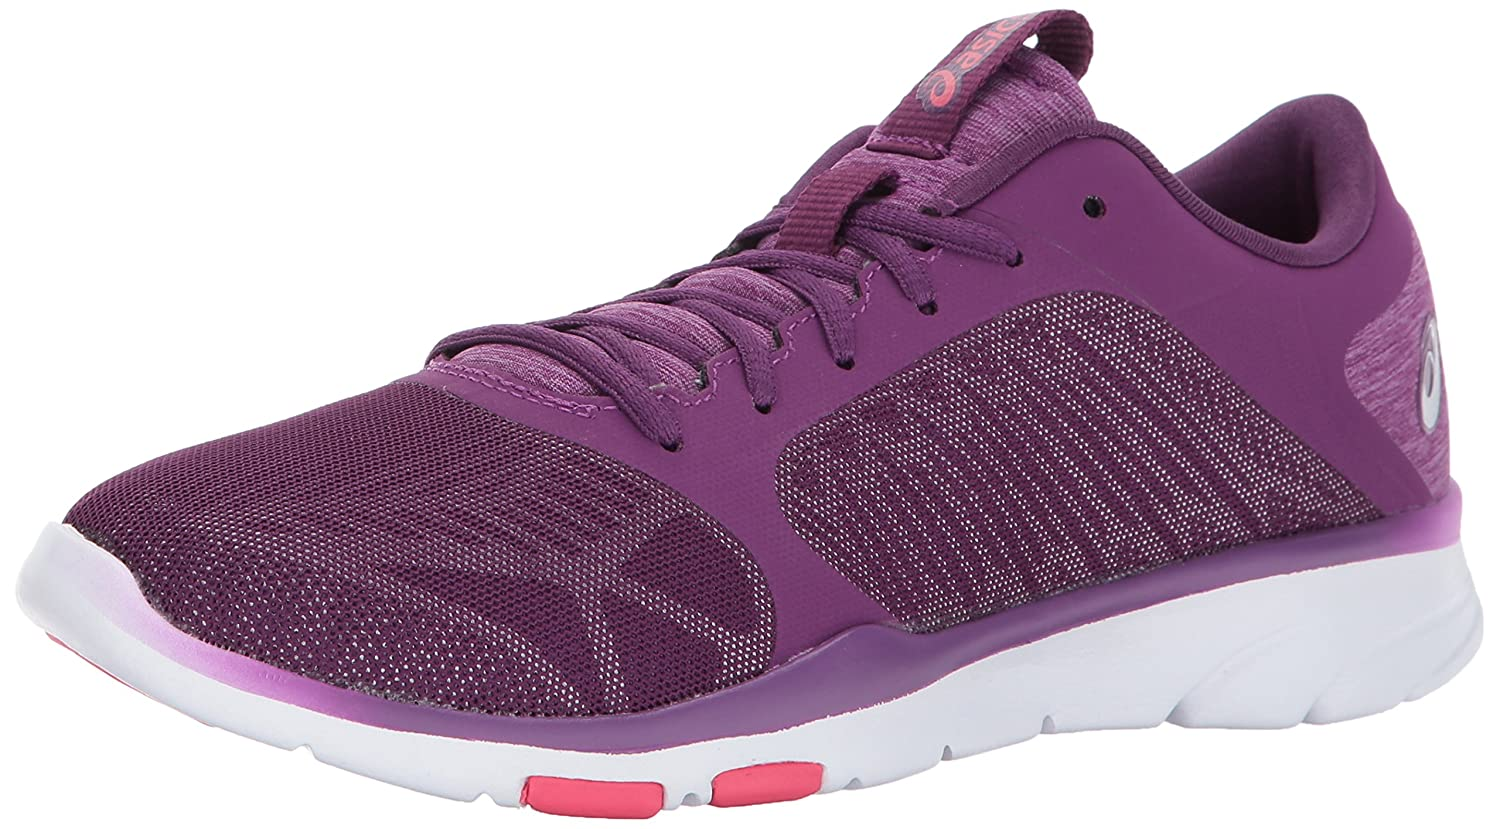 ASICS Women's Gel-Fit Tempo 3 Cross Trainer B01MXEW1KC 6.5 B(M) US|Prune/Silver/Rouge Red